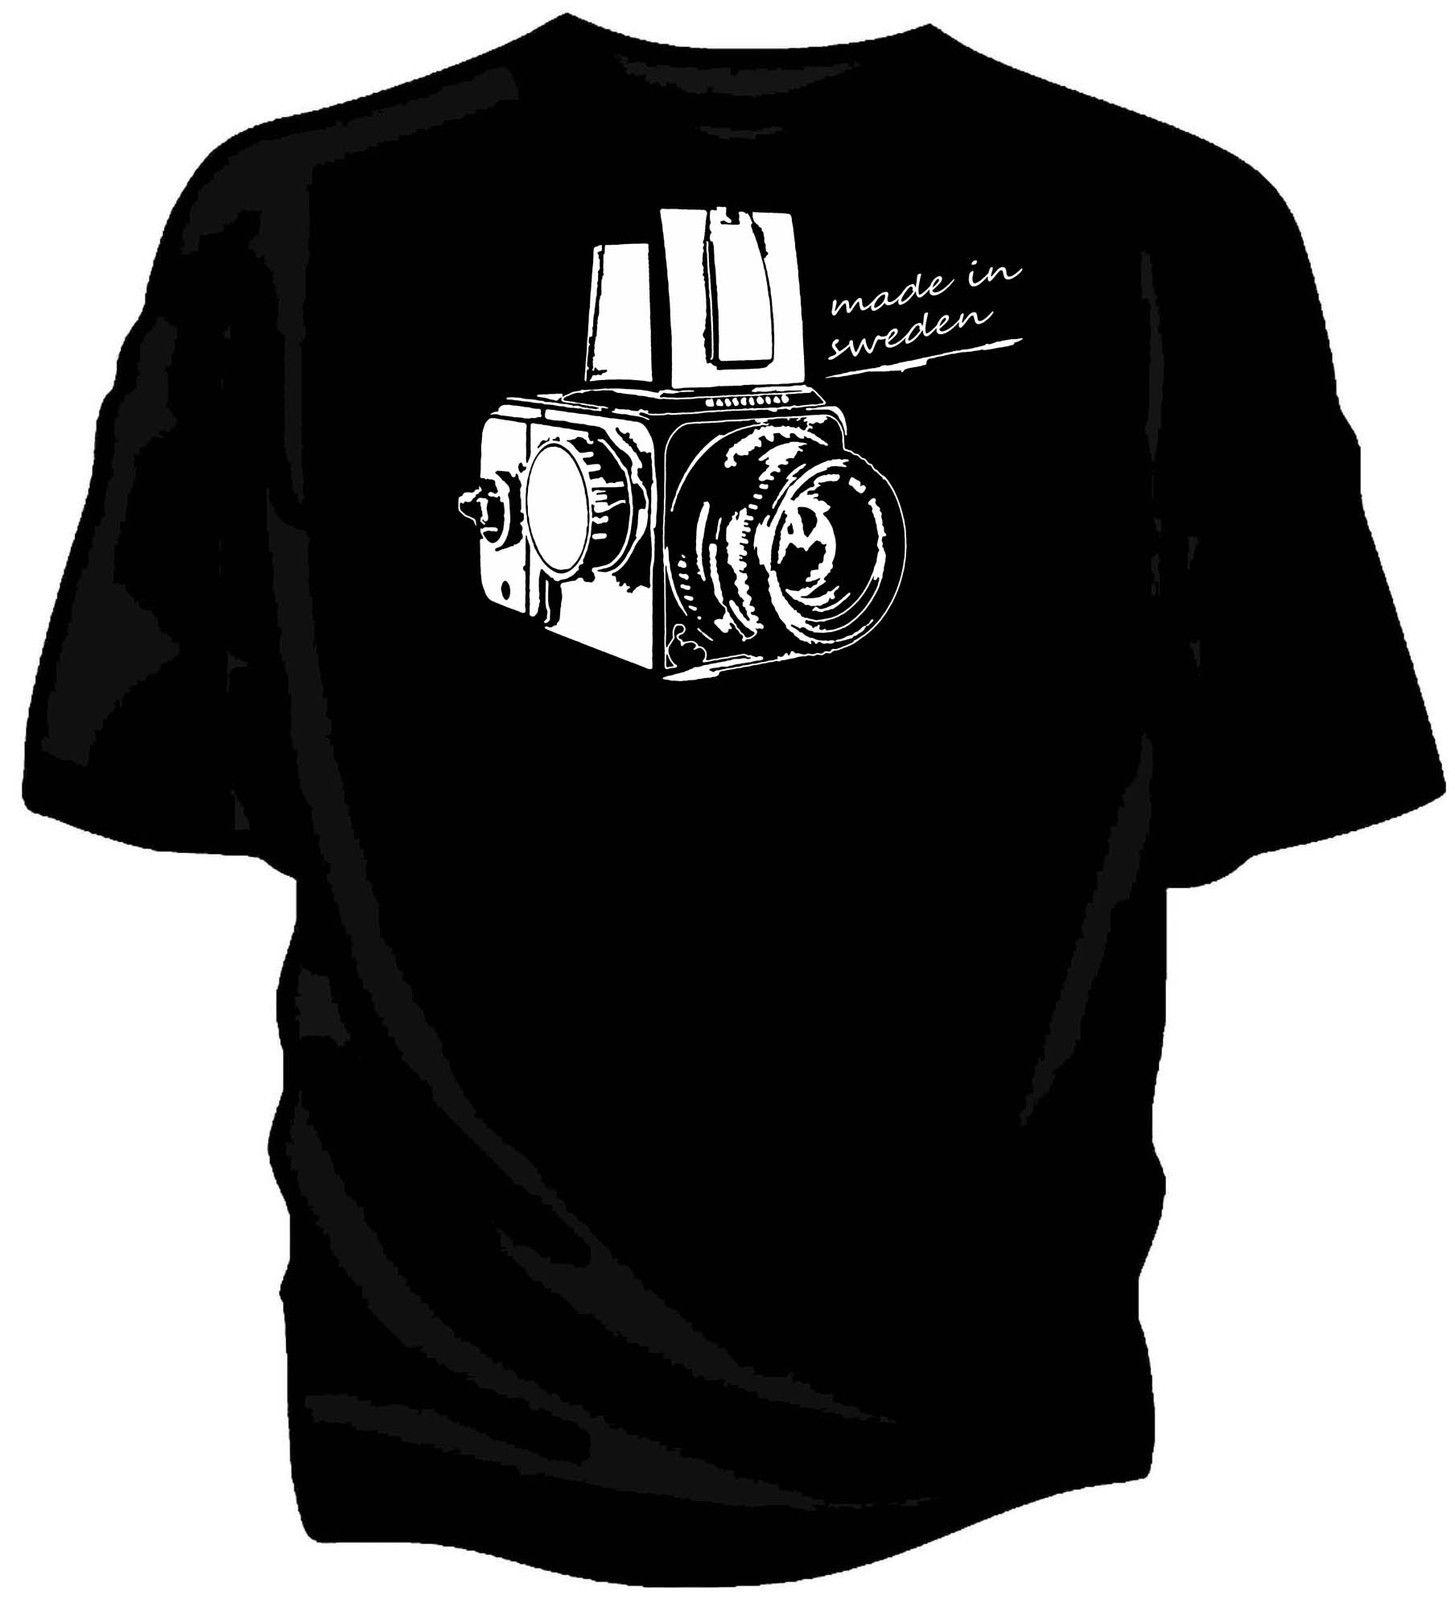 Details zu Hasselblad vintage camera 'Made in Sweden' - Original Artwork T-shirt Funny free shipping Unisex Casual gift